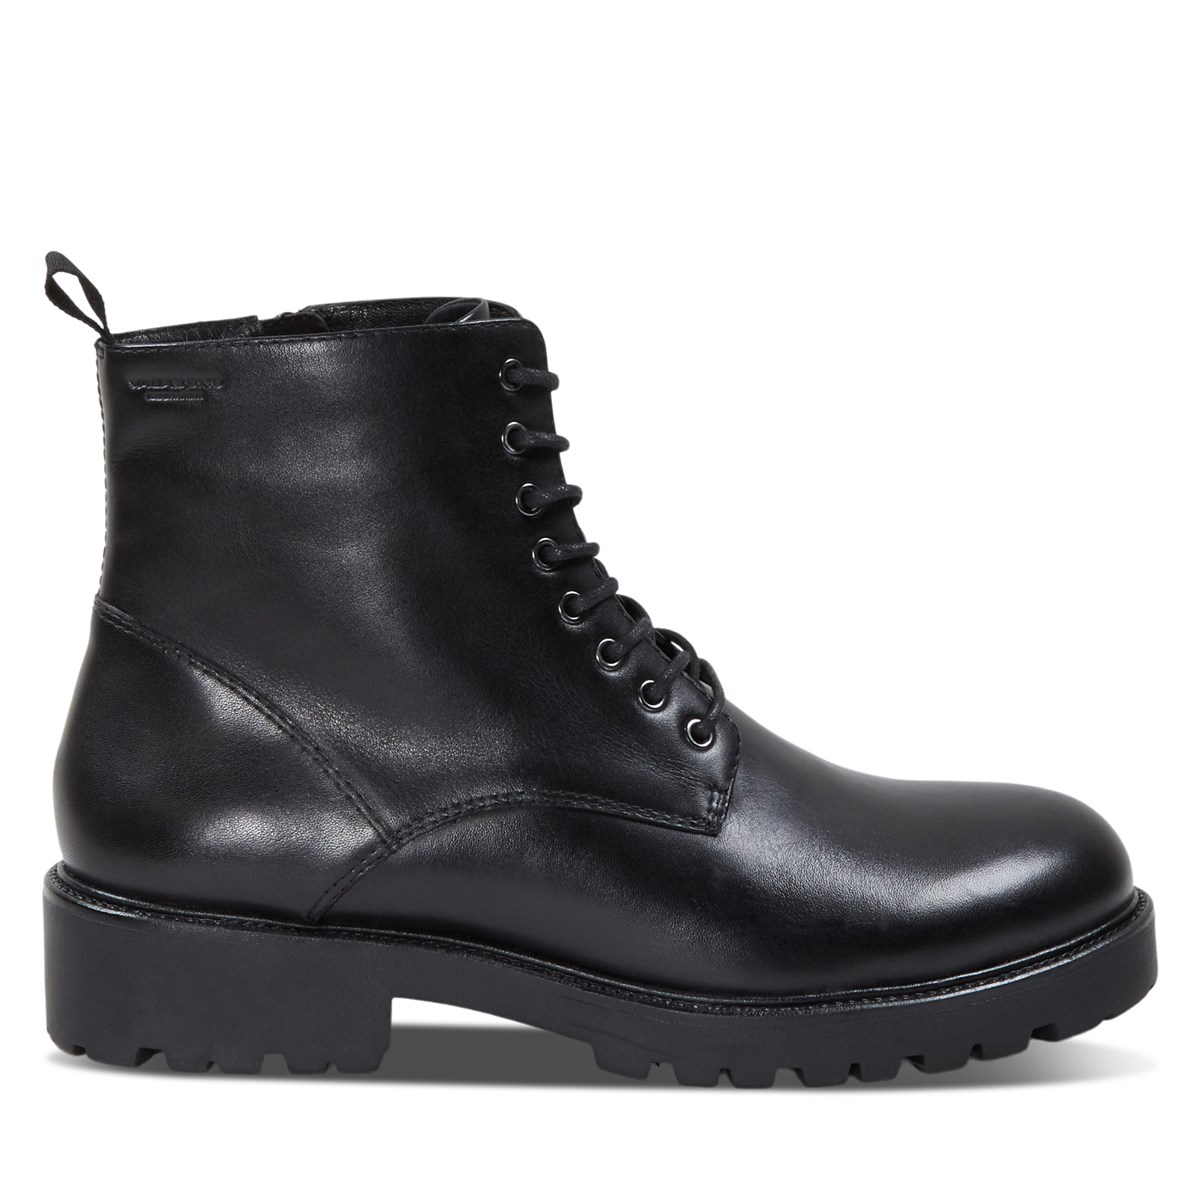 93be7c9fb73 Women's Kenova Lace-Up Boots in Black